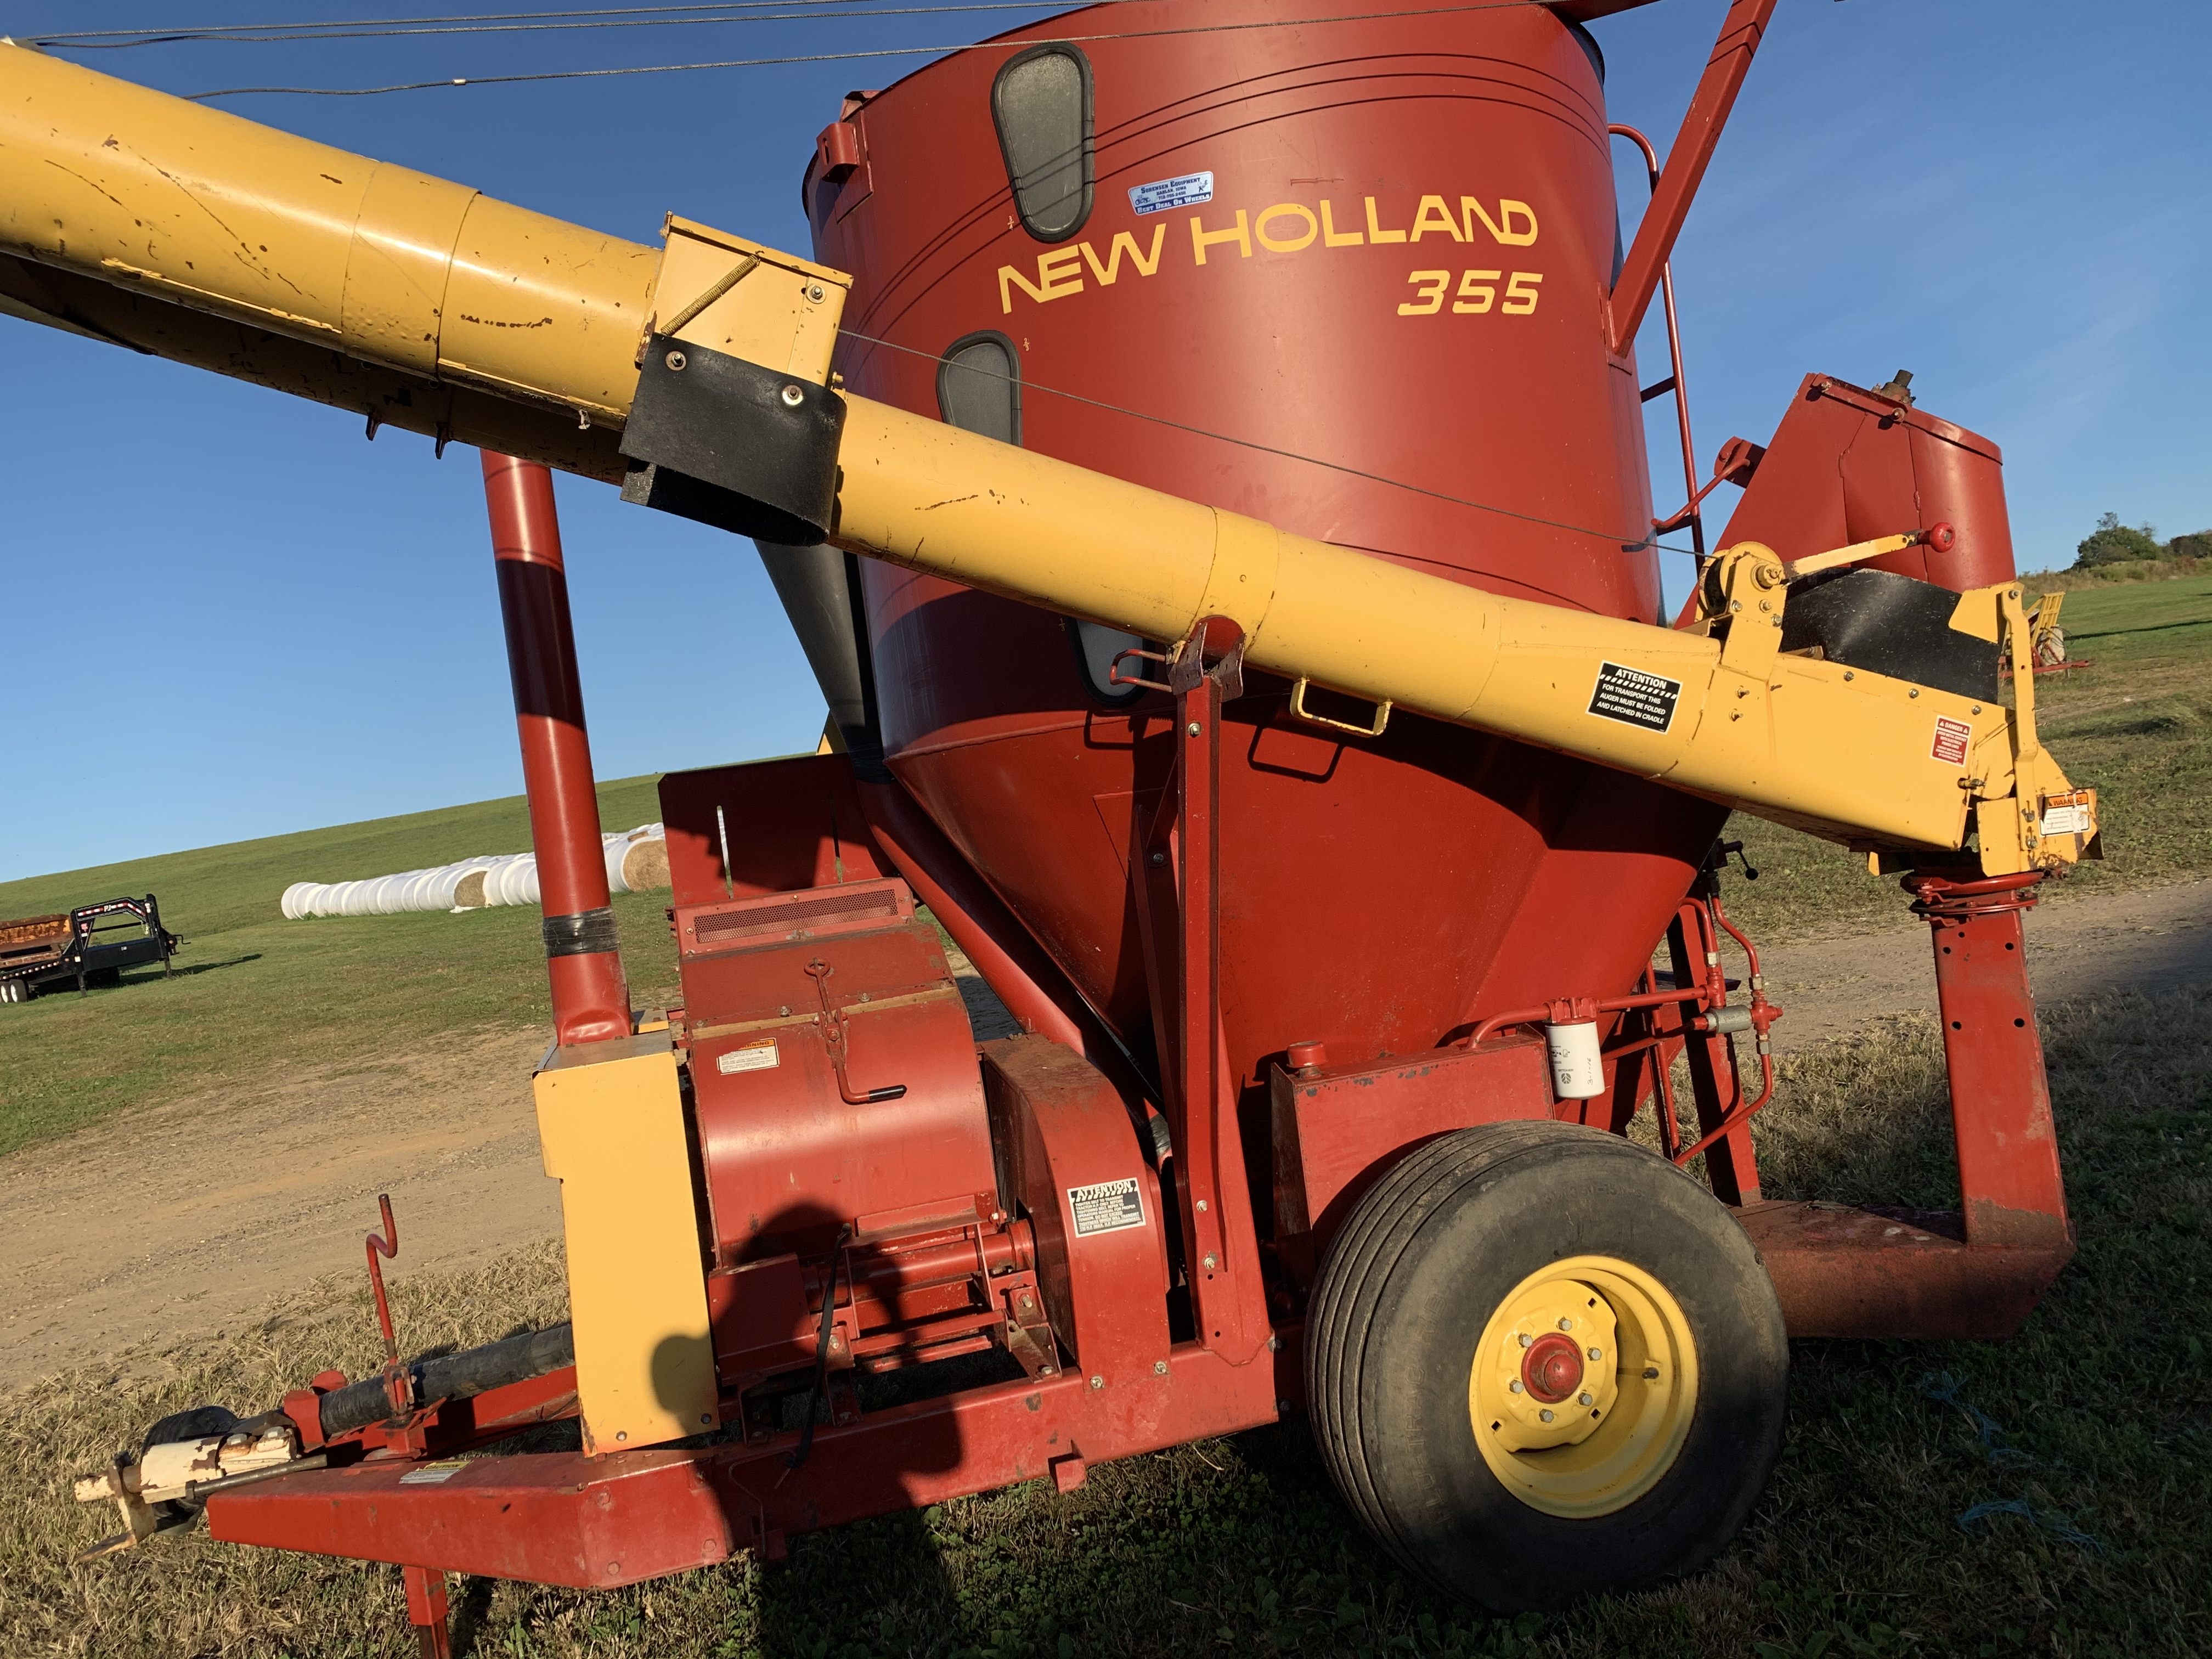 Used NEW HOLLAND 355 $16,900.00